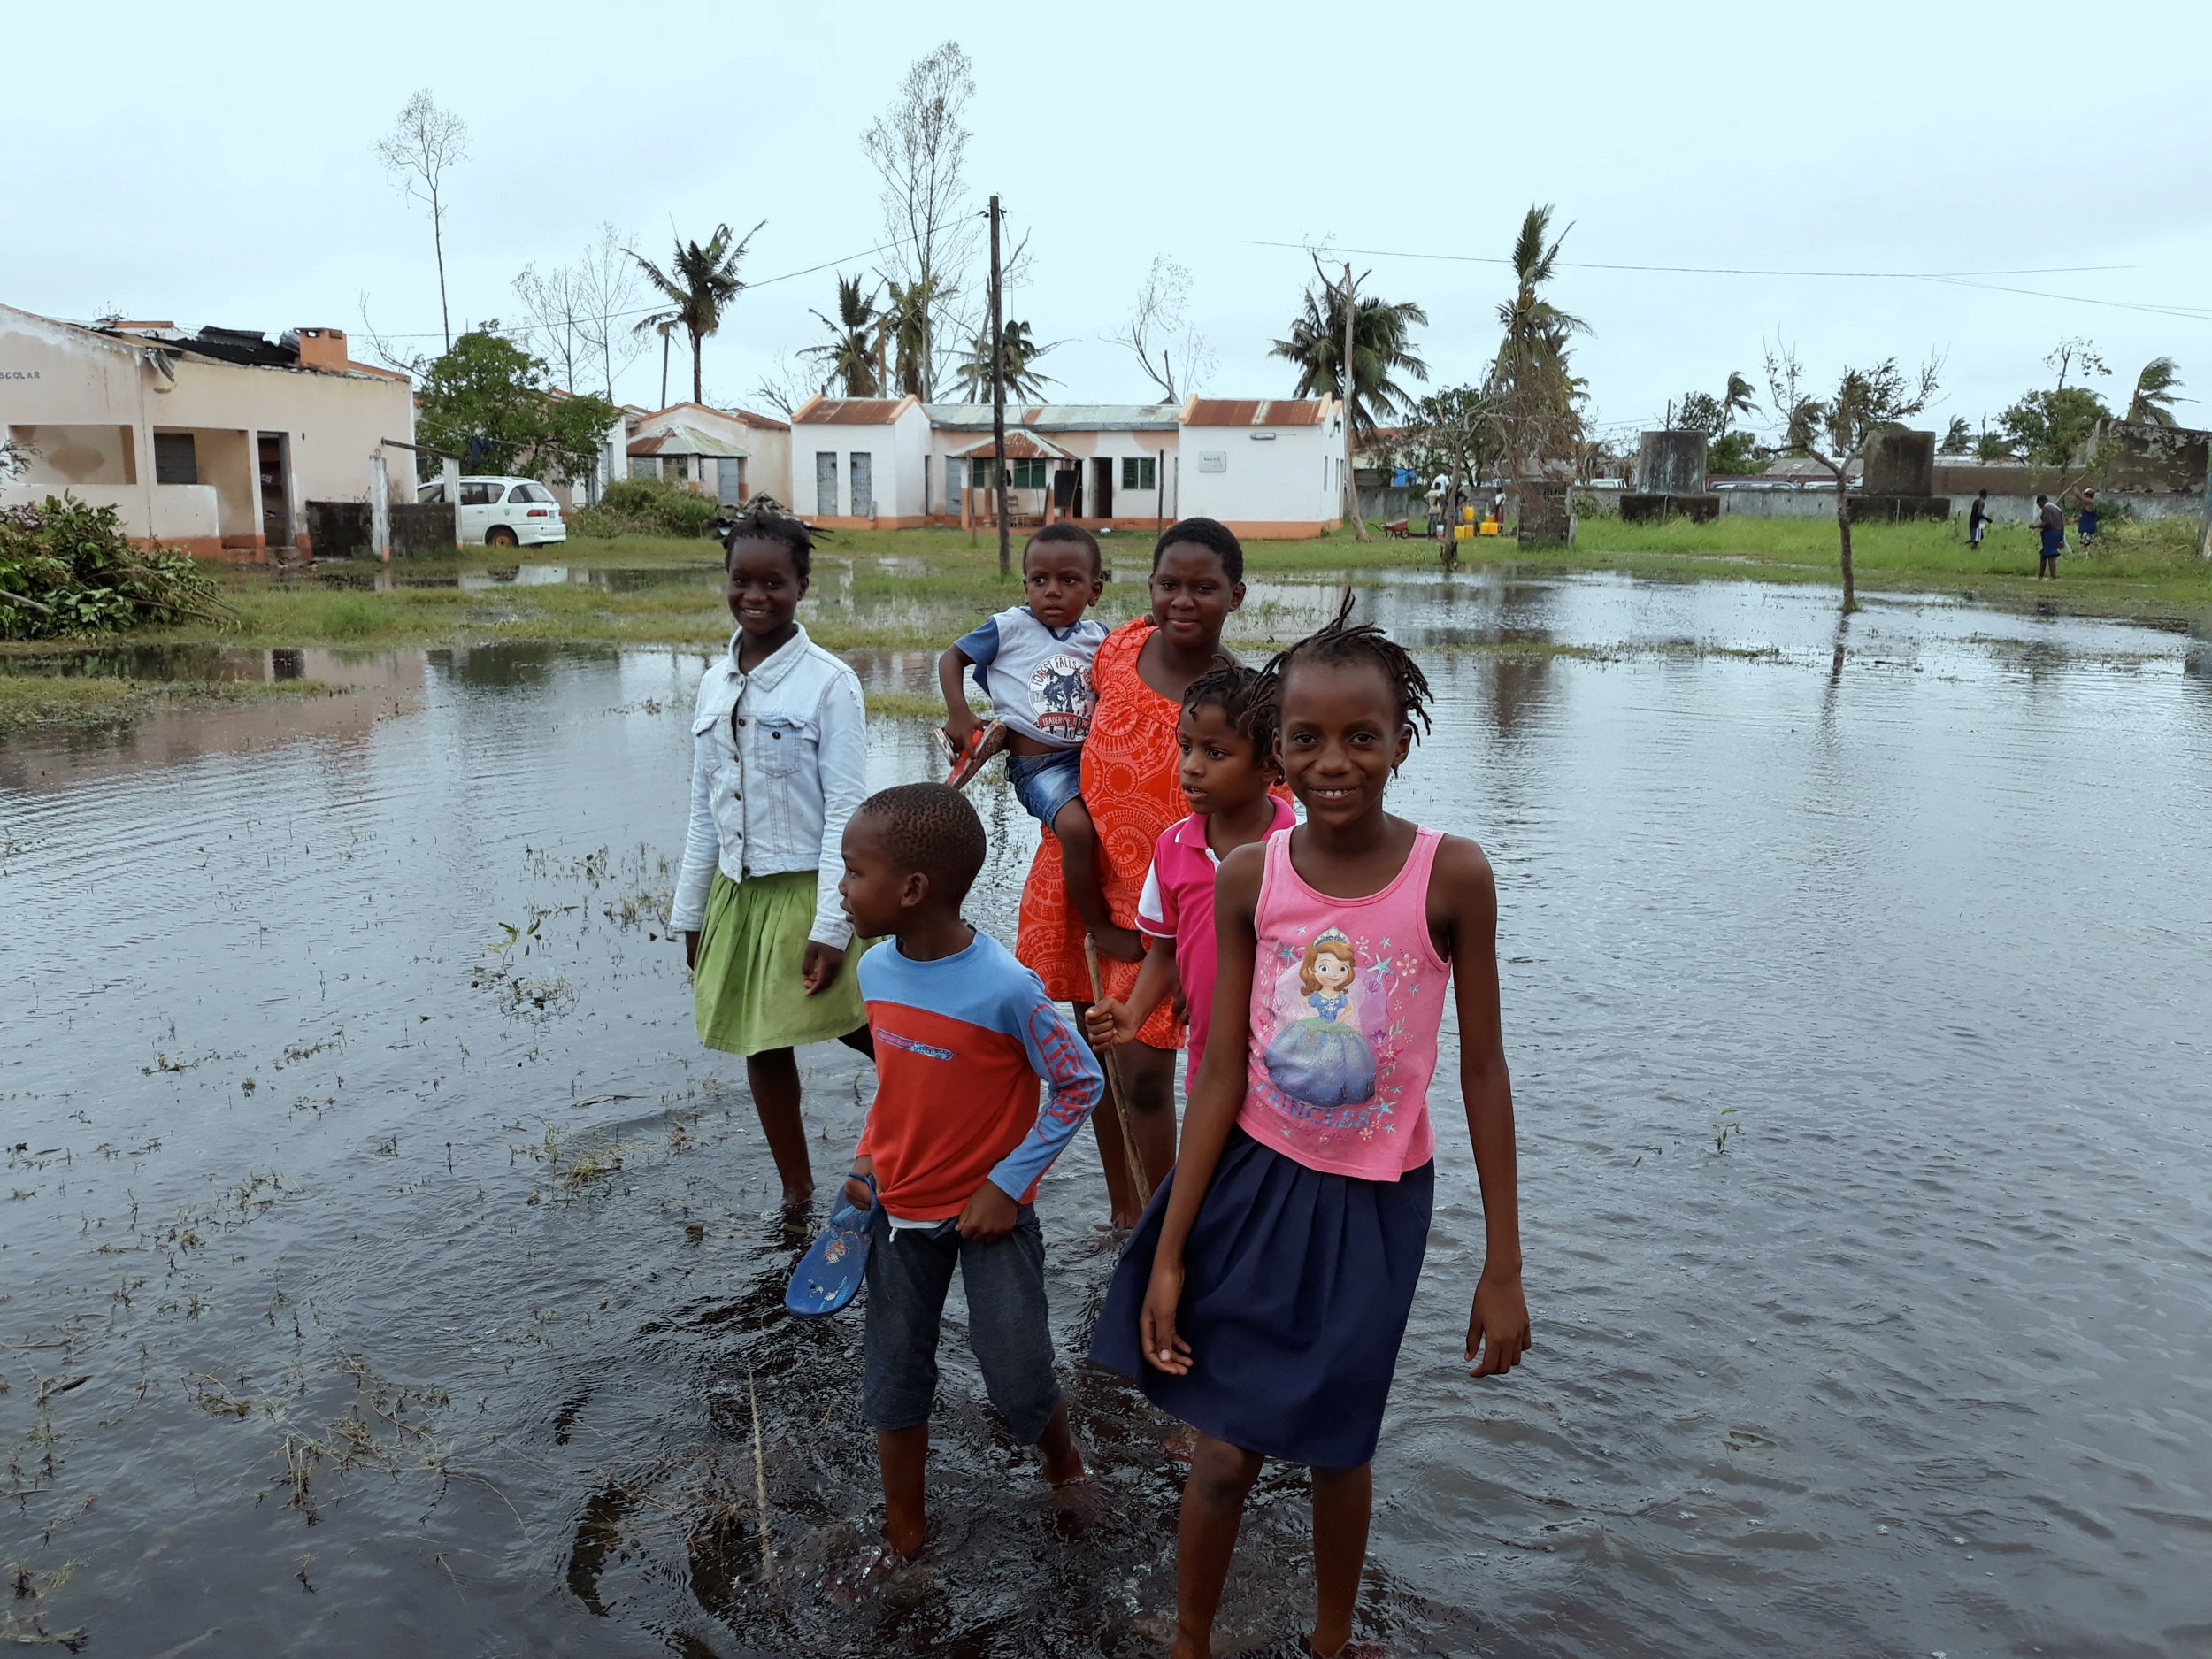 Children from one of ASEM's schools wade through the waters after Cyclone Idai, in Beira, Mozambique.